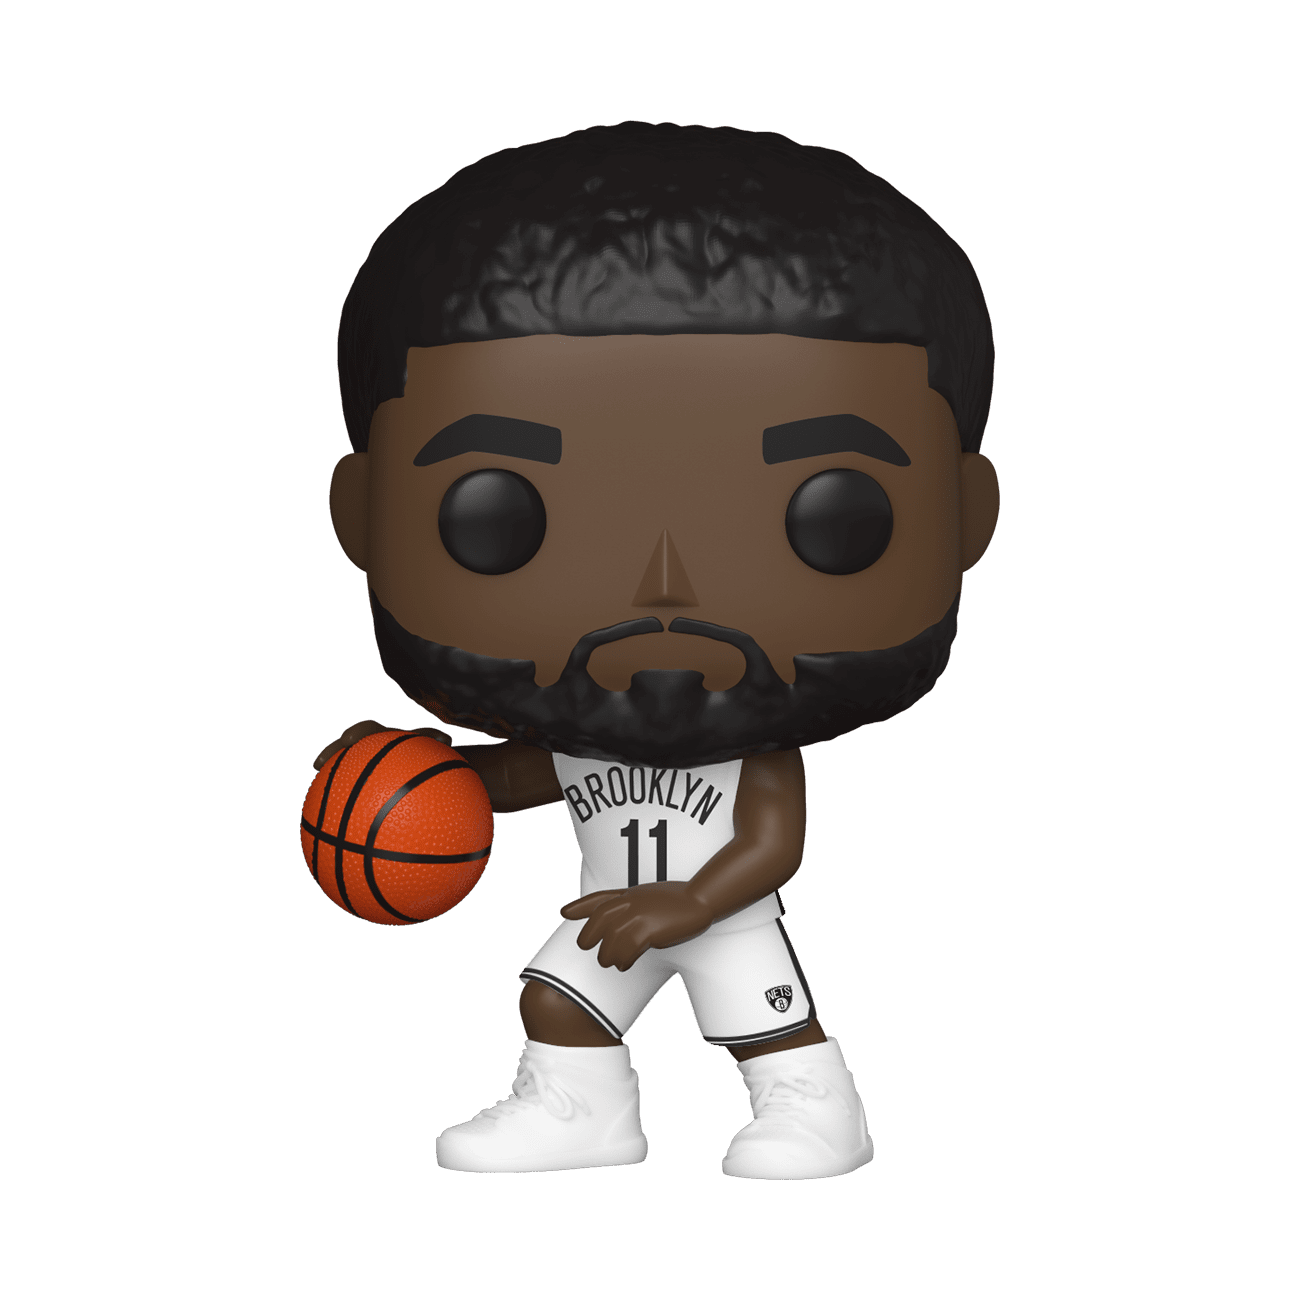 1436_3266_8d750cd6619d7f3_46546_NBA_KyrieIrving_POP_GLAM-WEB-c98f68897a3d1b6efb5496219a27f3c4.png